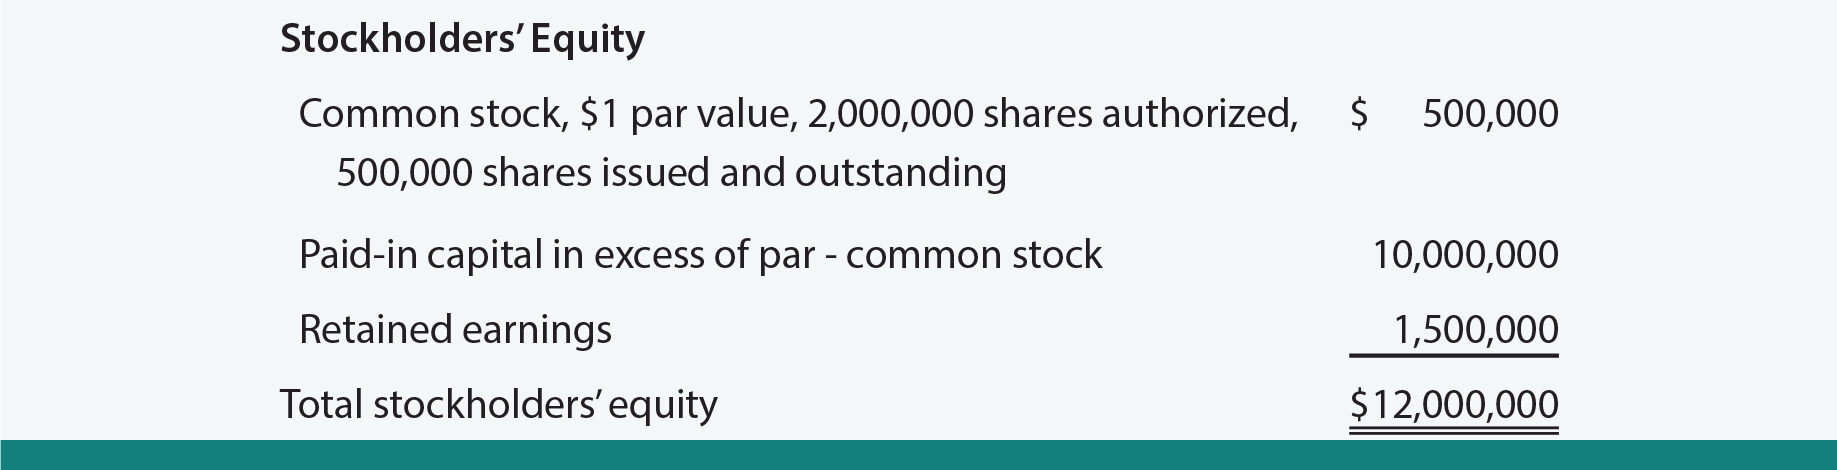 Book Value Per Share On The Balance Sheet